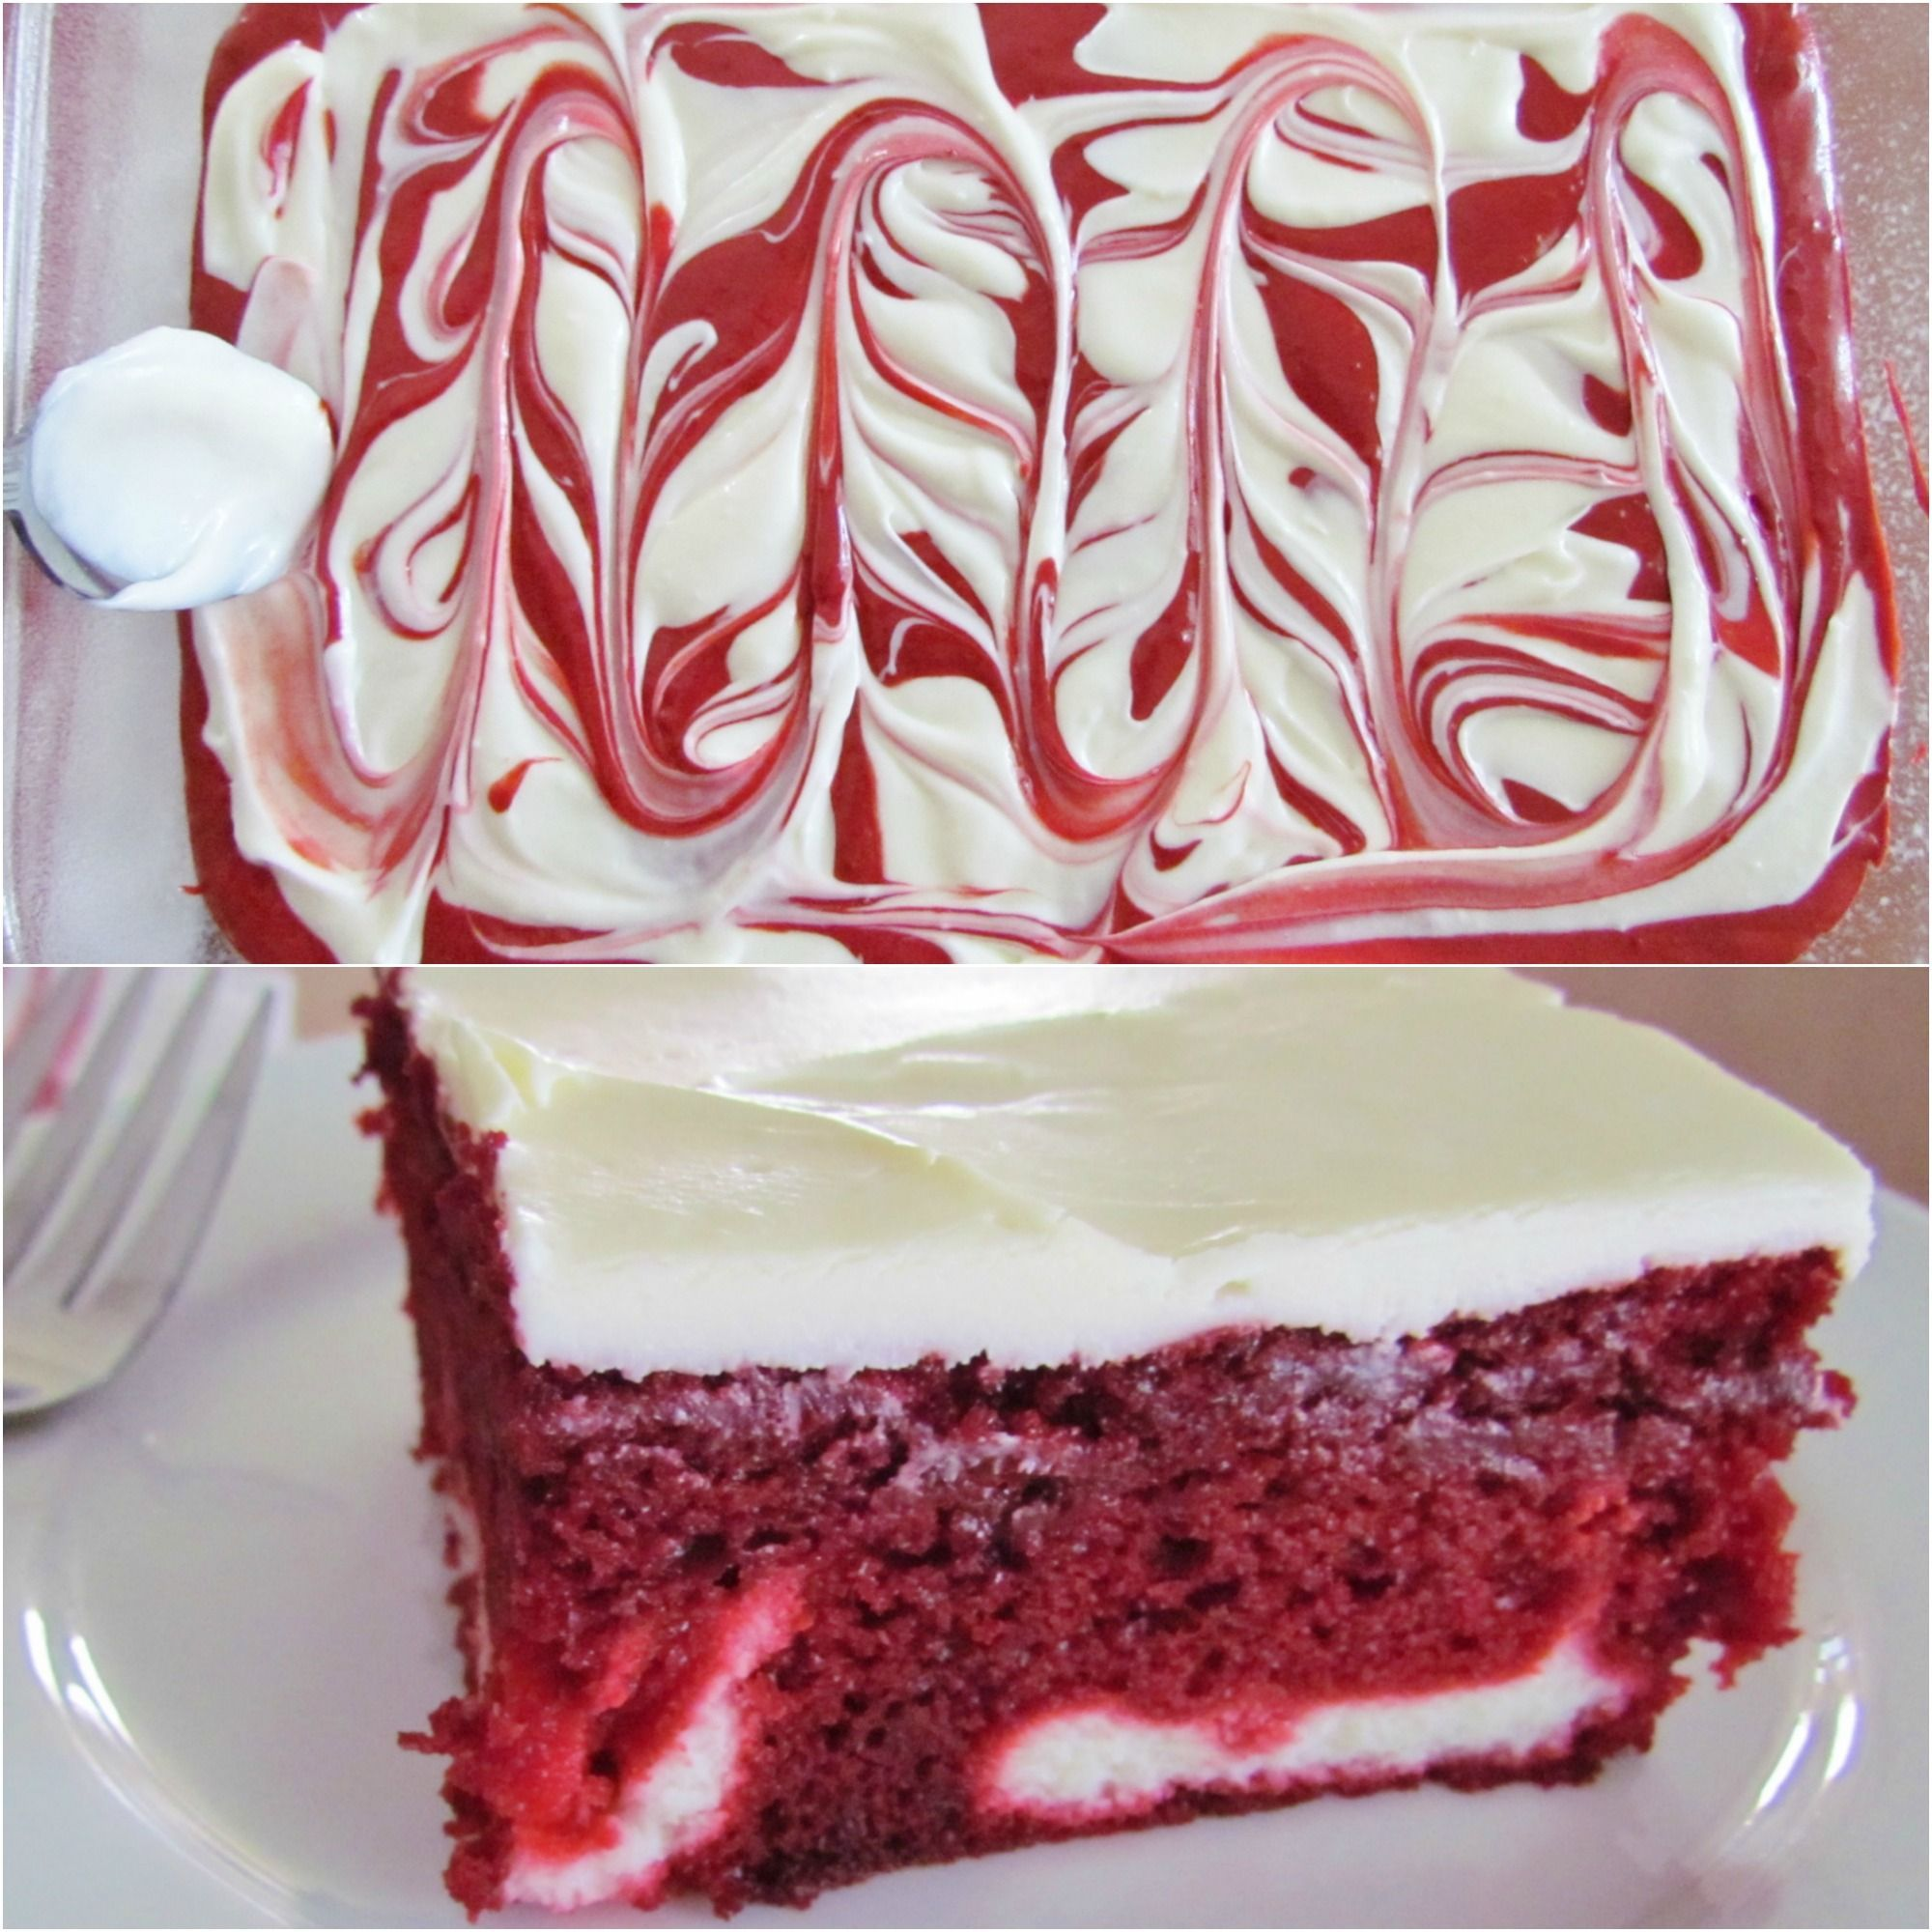 Red Velvet Cheesecake Cake Video The Country Cook Recipe Red Velvet Cheesecake Cake Velvet Cake Recipes Cake Mix Recipes